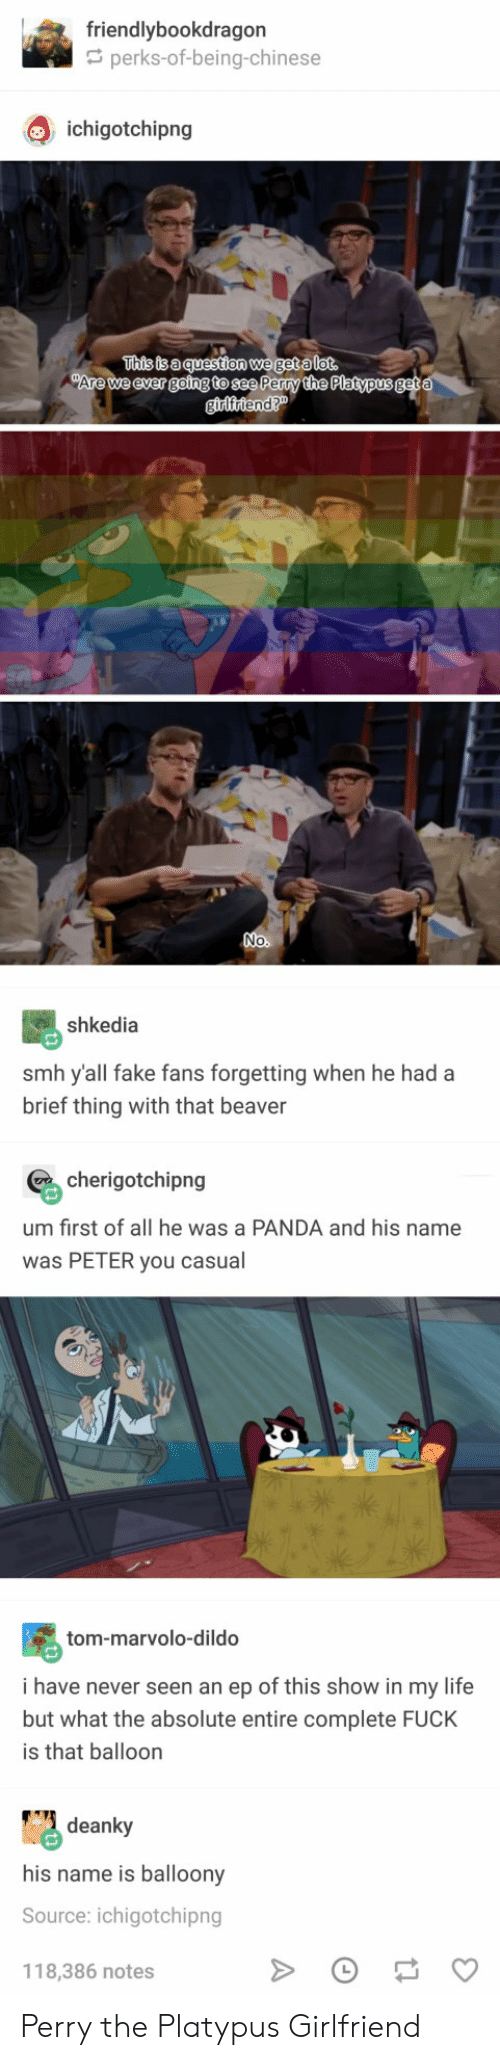 beaver: friendlybookdragon  perks-of-being-chinese  Q ichigotchipng  This is a questien we getalot.  Are we ever going to see Perry the Platypus  No  shkedia  smh y'all fake fans forgetting when he had a  brief thing with that beaver  cherigotchipng  um first of all he was a PANDA and his name  was PETER you casual  tom-marvolo-dildo  i have never seen an ep of this show in my life  but what the absolute entire complete FUCK  is that balloon  deanky  his name is balloony  Source: ichigotchipng  118,386 notes Perry the Platypus Girlfriend